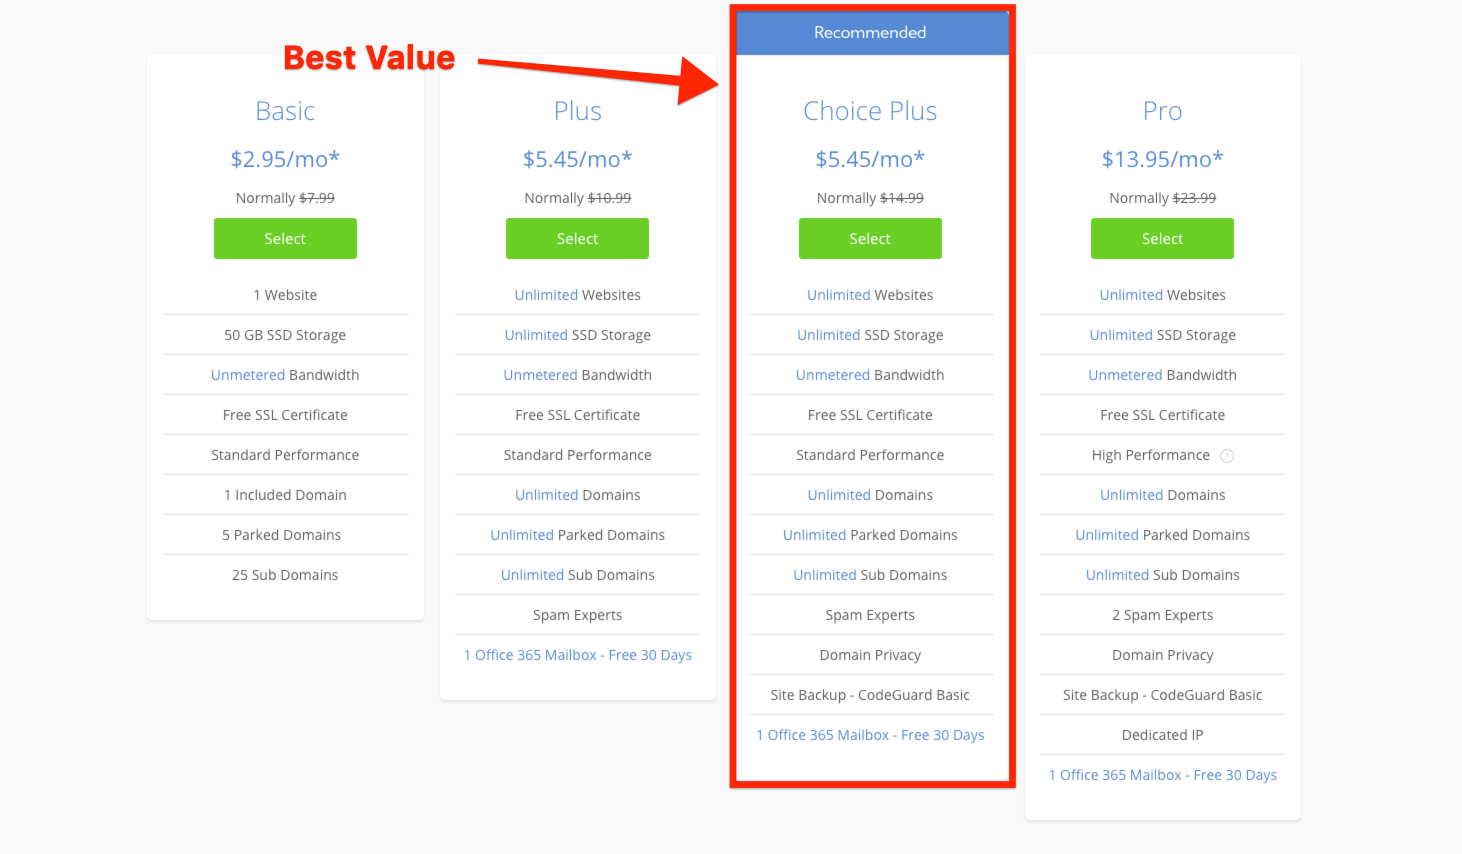 Pick your plan - best value